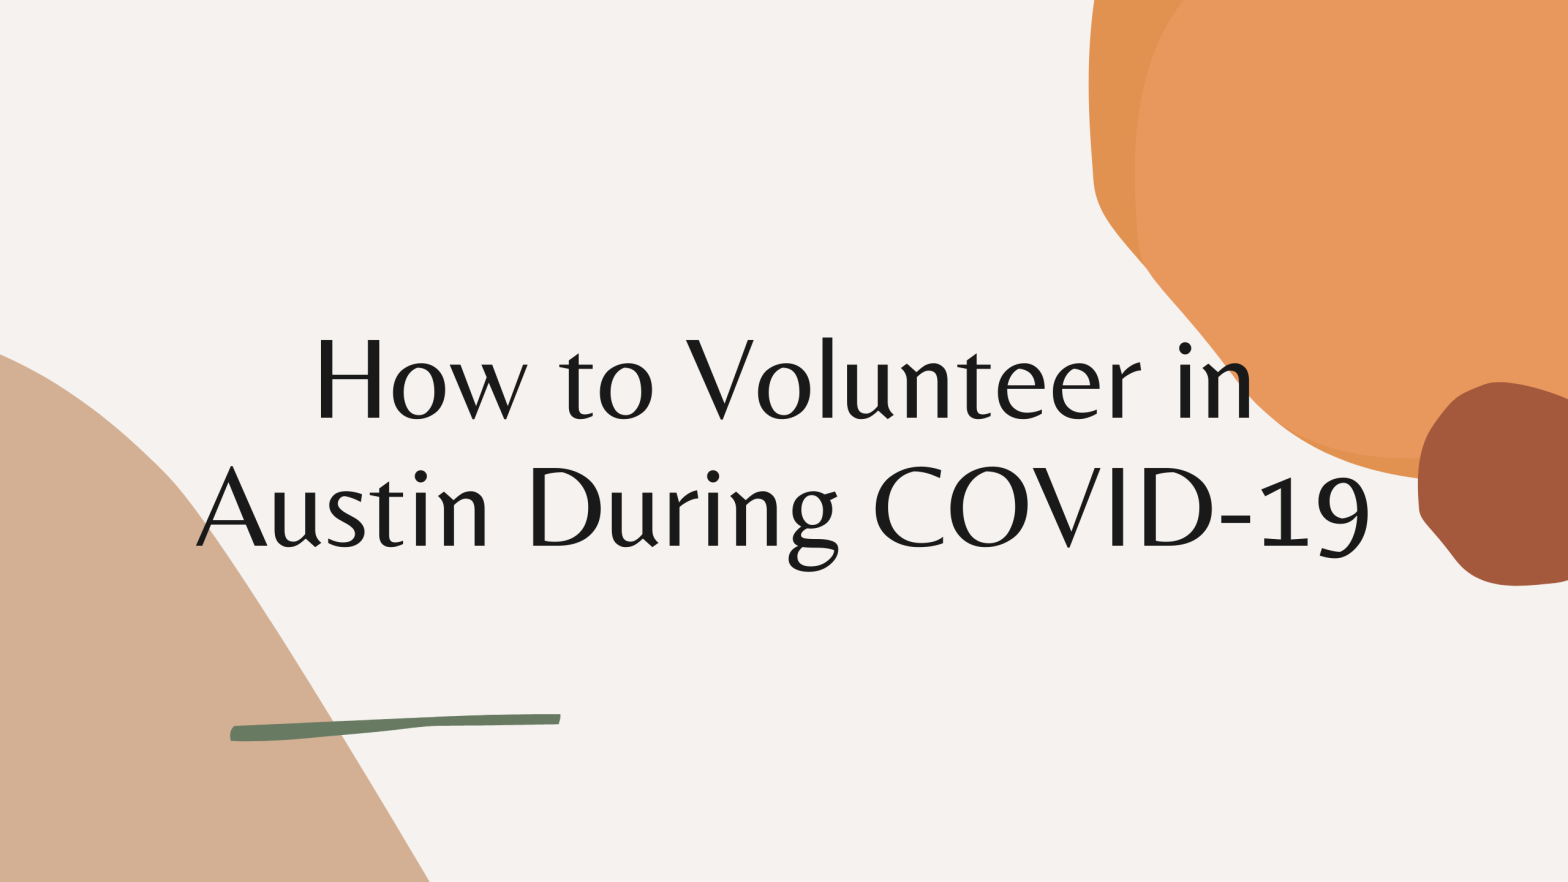 How to Volunteer in Austin During COVID-19